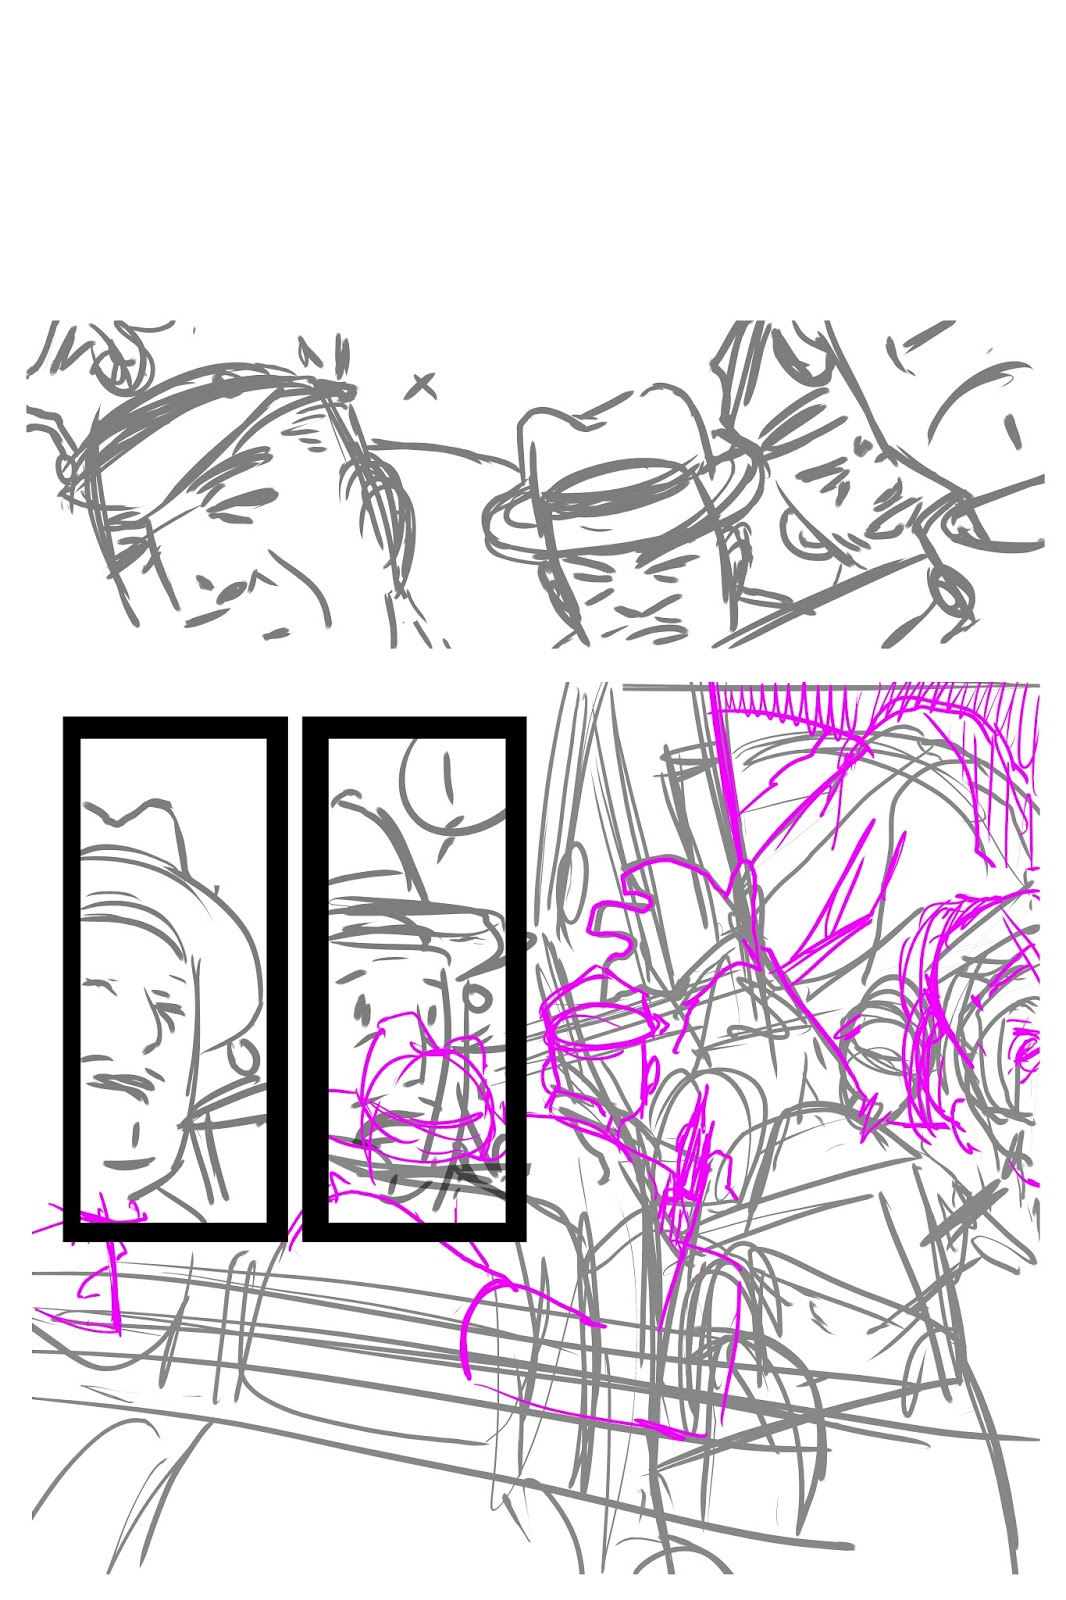 STEP ONE I Draw The Page In Rough Pencil Form It Might Be Unclear To You But Can See Where Im Trying Go